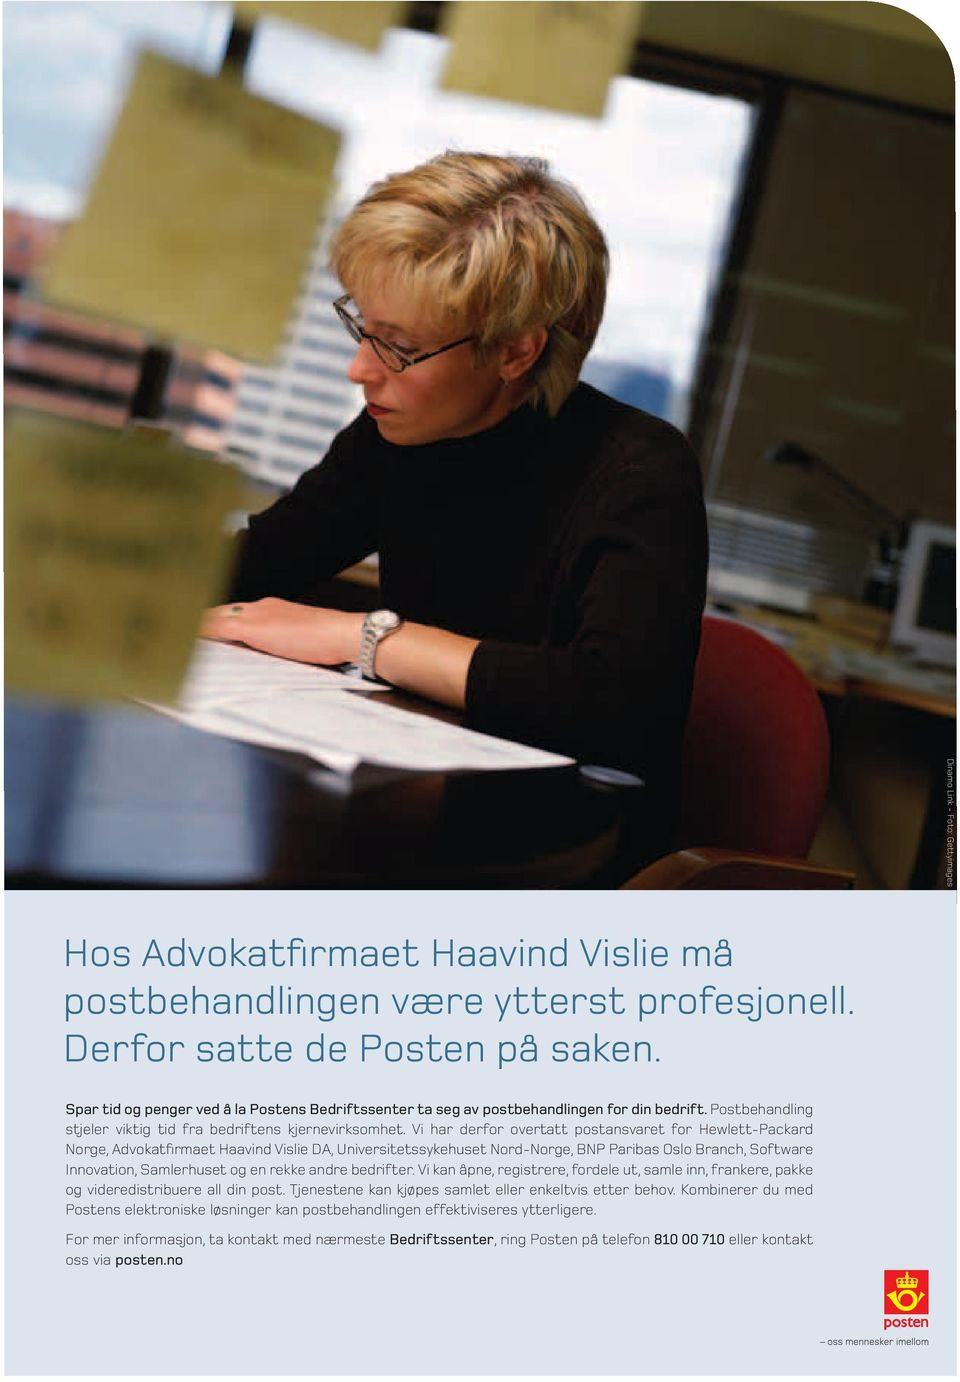 Vi har derfor overtatt postansvaret for Hewlett-Packard Norge, Advokatfirmaet Haavind Vislie DA, Universitetssykehuset Nord-Norge, BNP Paribas Oslo Branch, Software Innovation, Samlerhuset og en